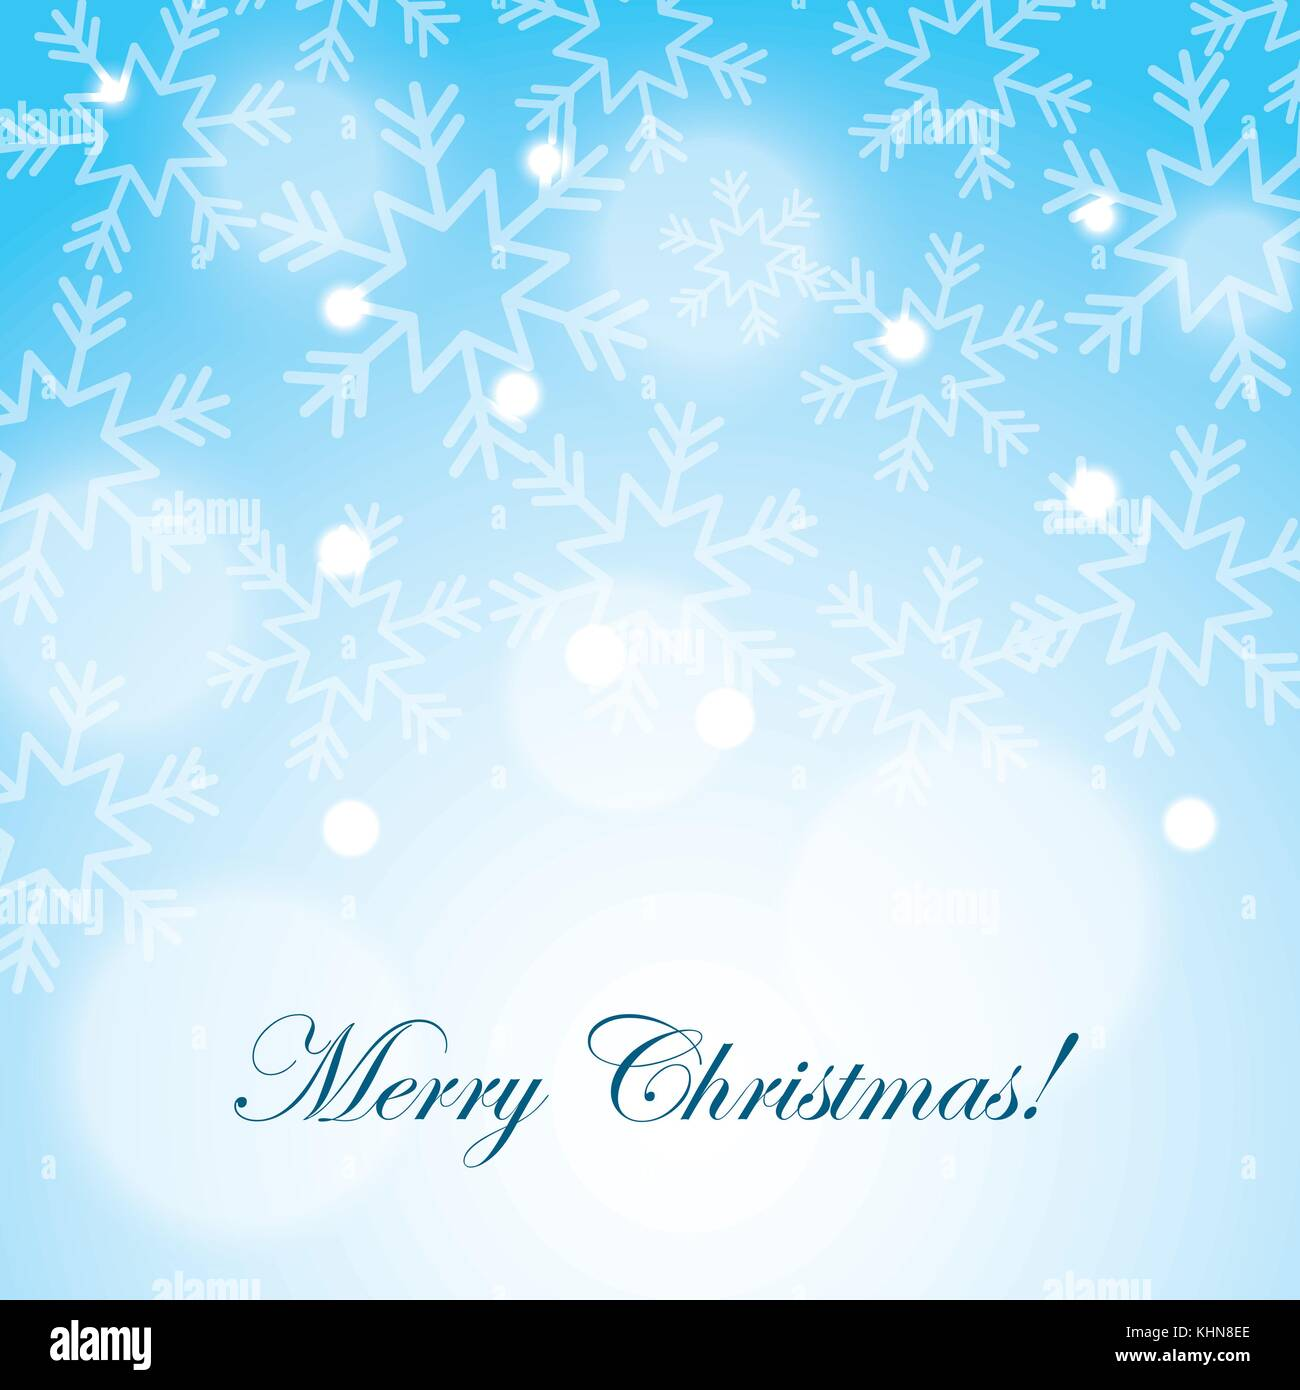 merry christmas snow snowflake blurred background - Stock Vector